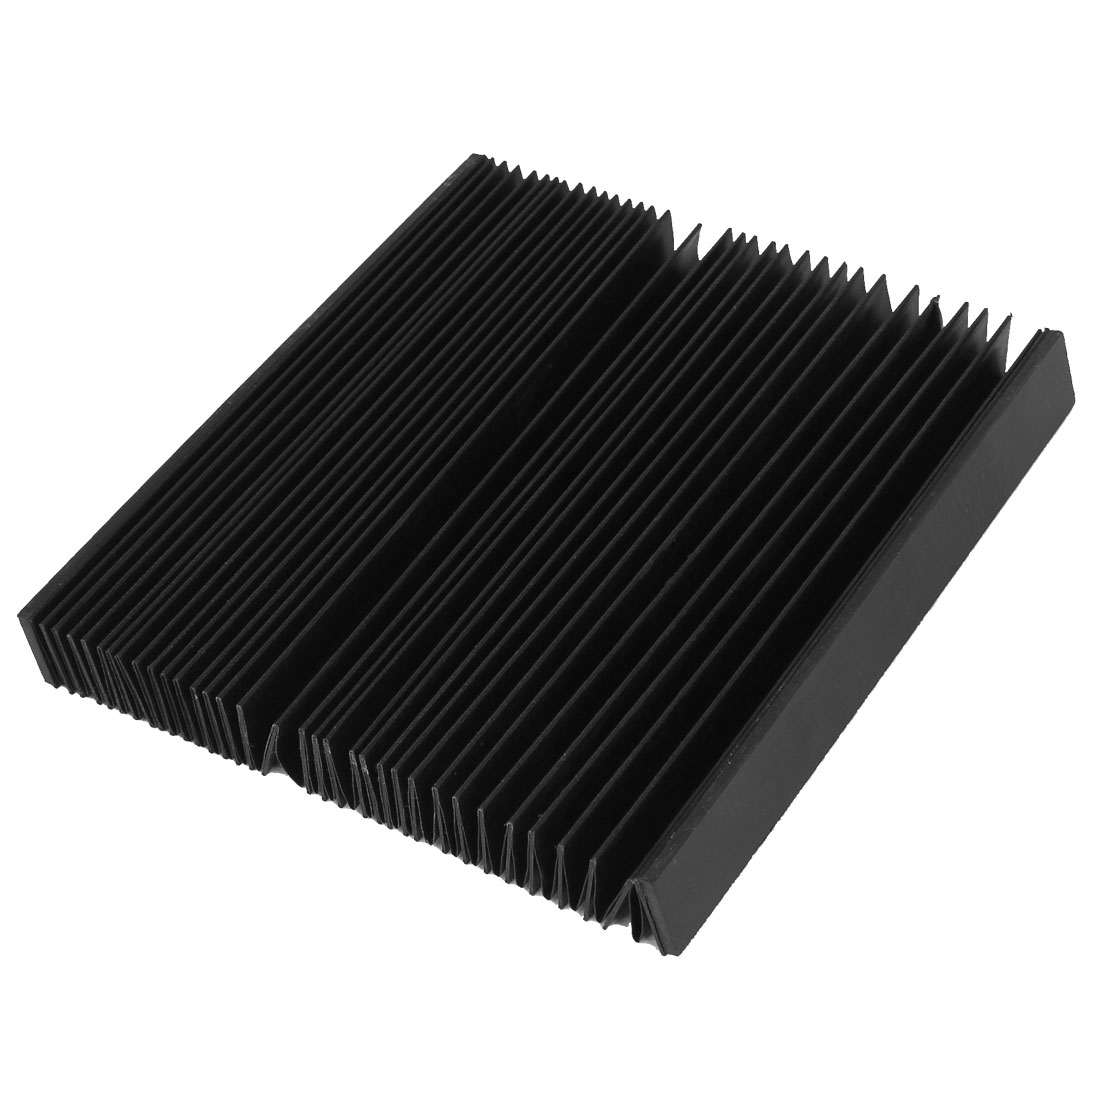 100cmx17cmx2cm Foldable CNC Machine Accordion Dust Cover Protector Black